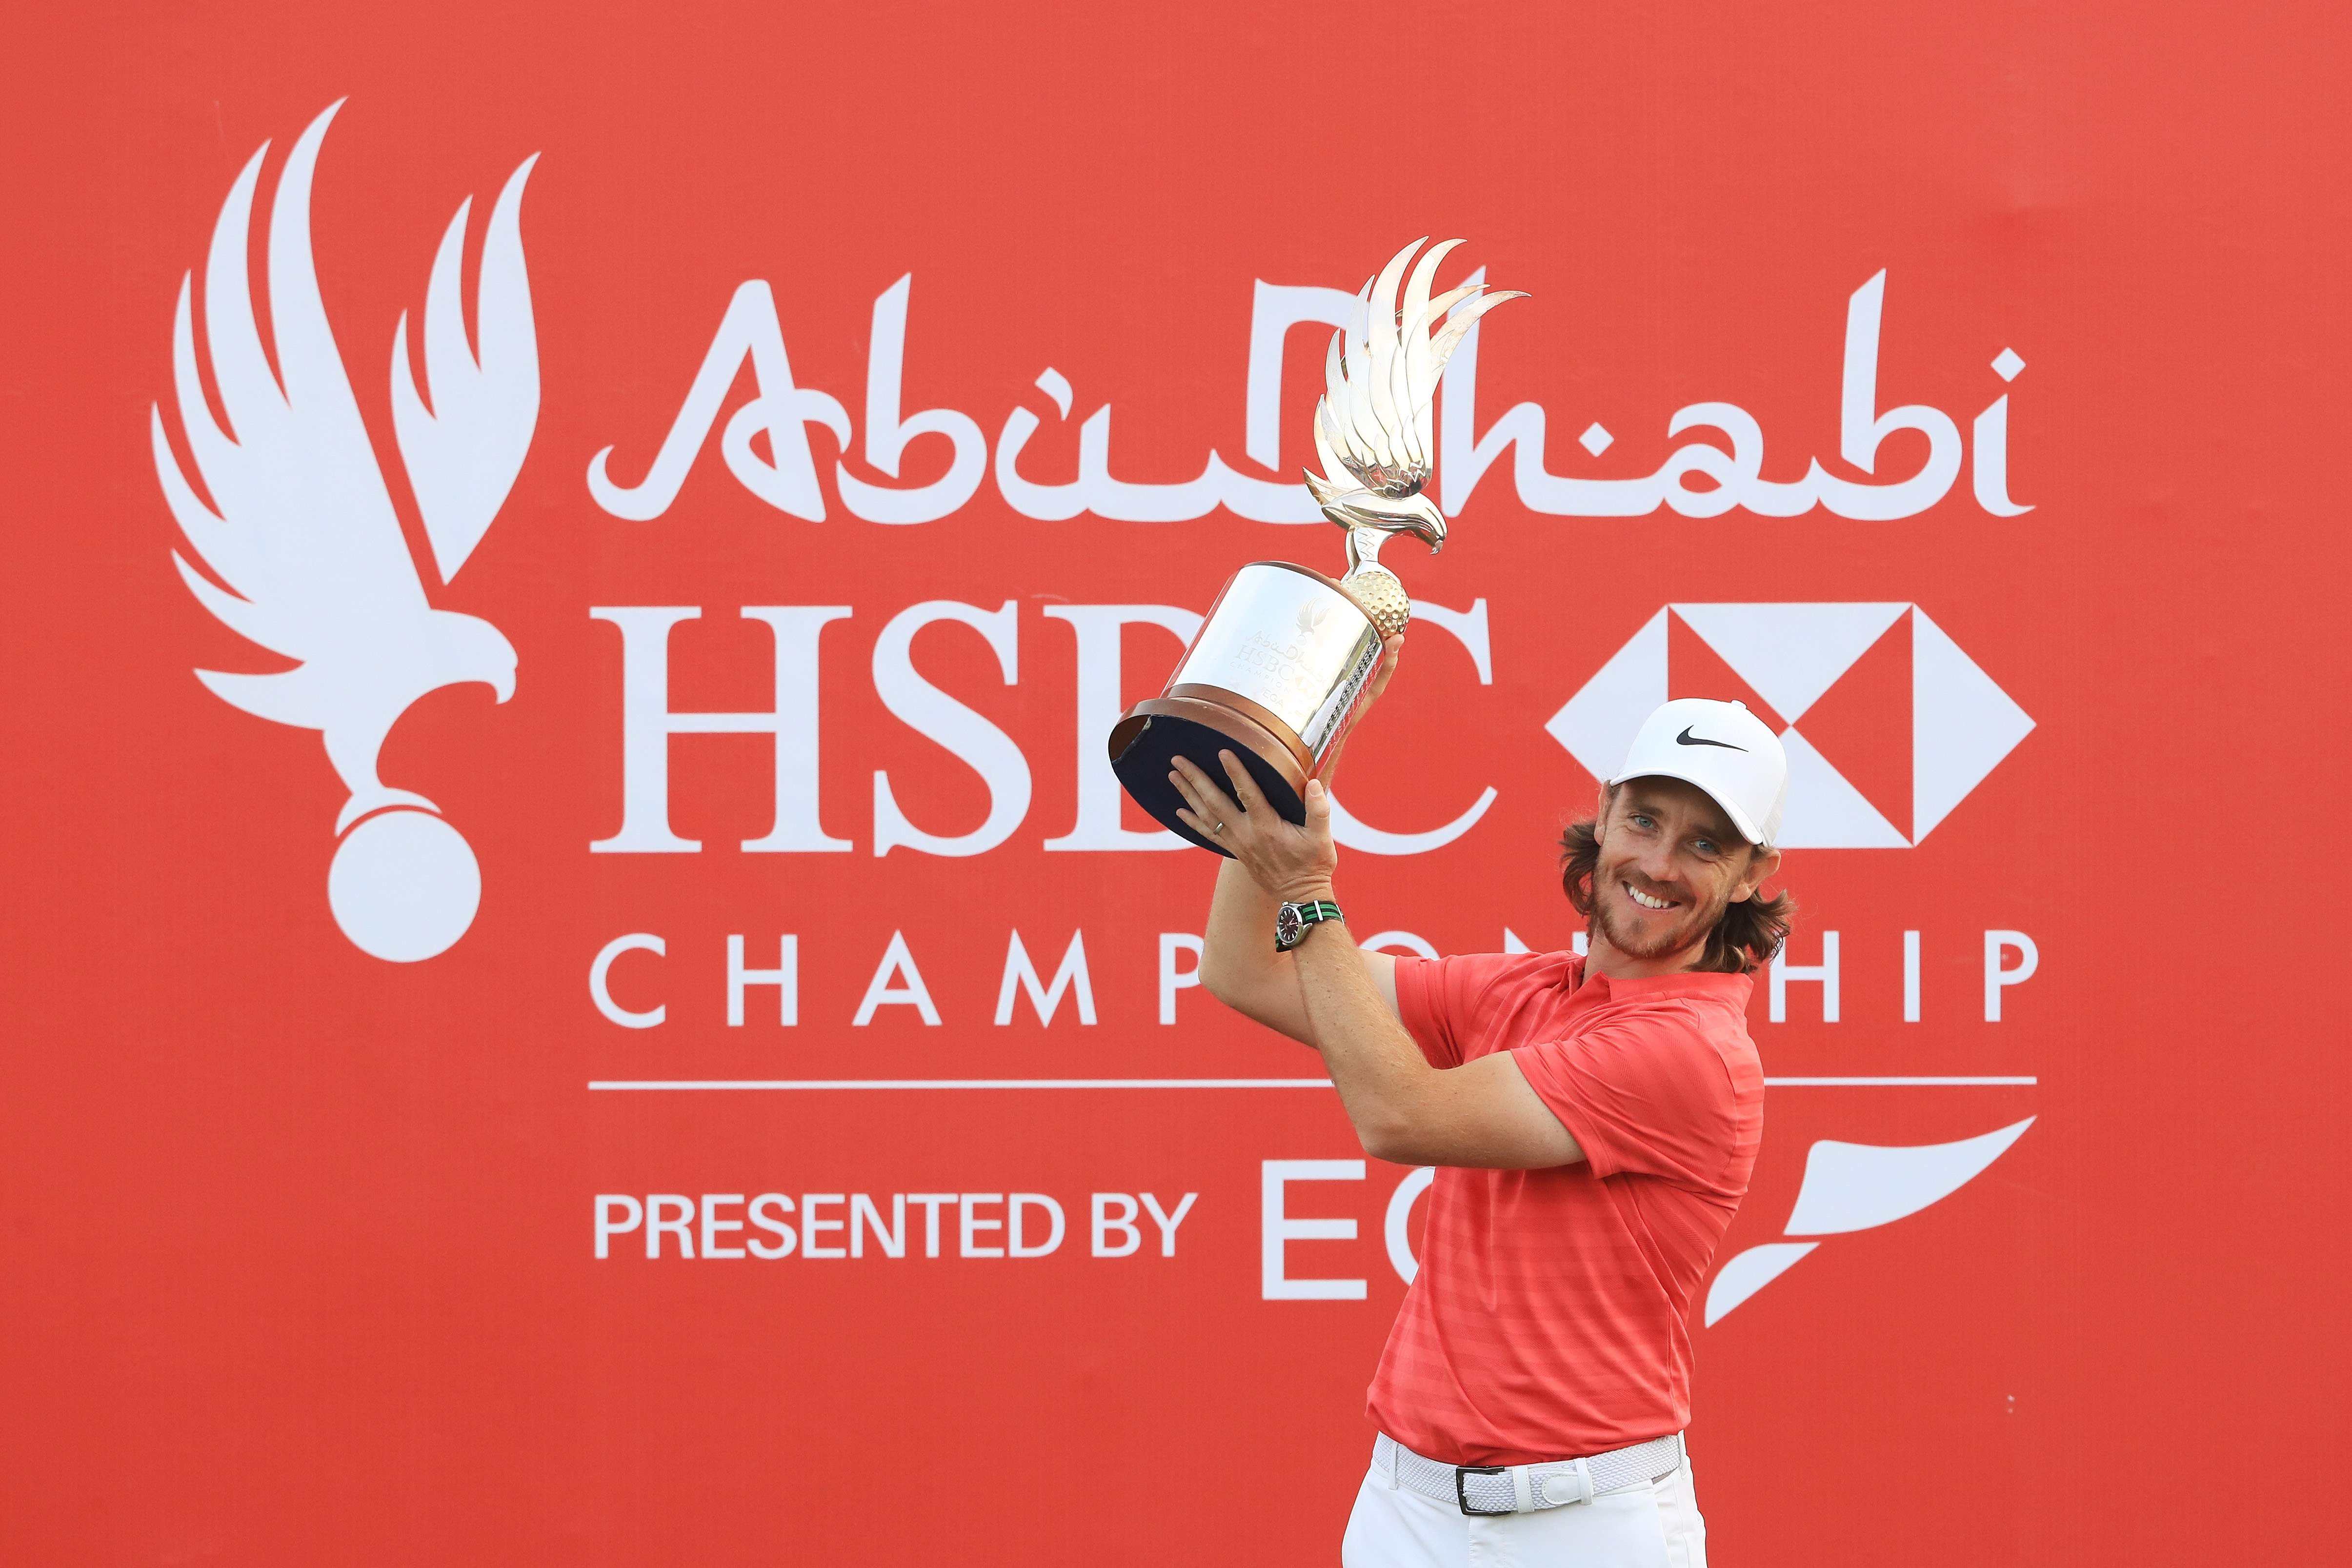 Fleetwood moves to 12th in world after successful defence of Abu Dhabi Golf Championship